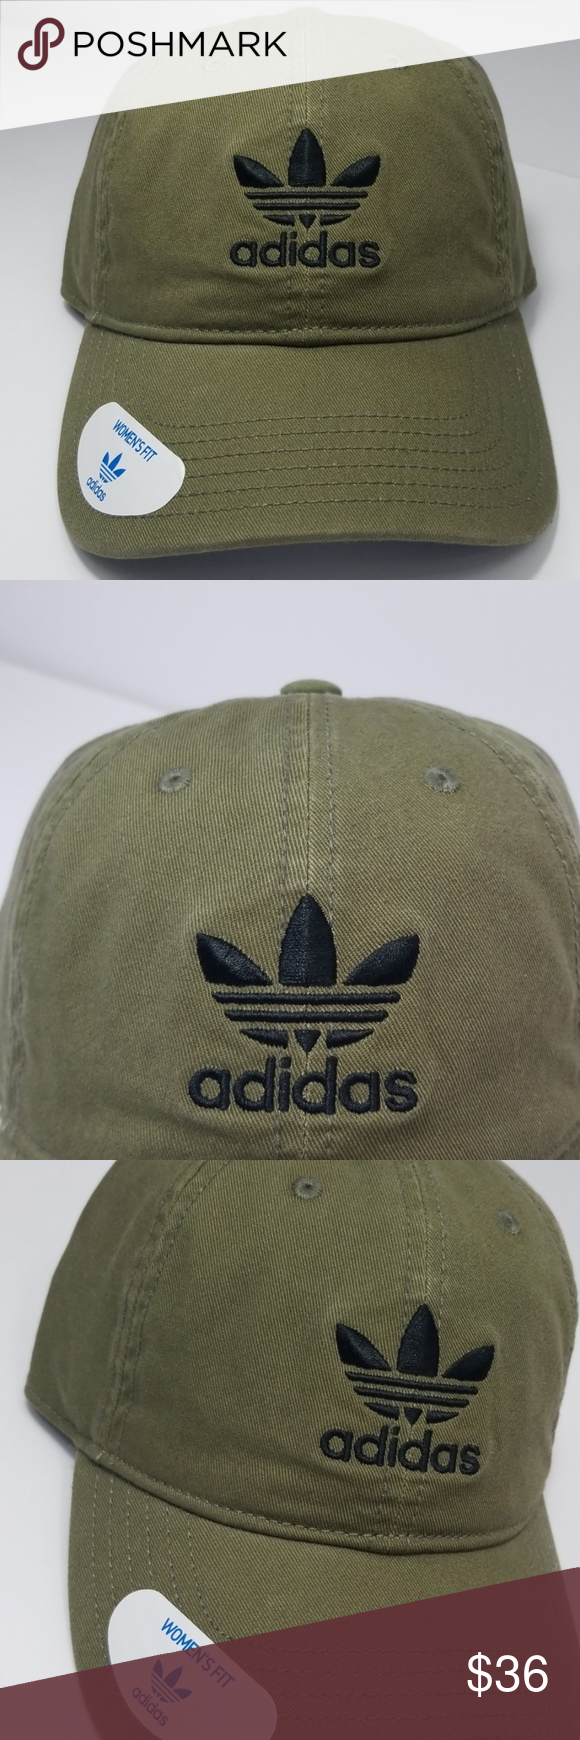 af7e4d6d7c5ad Adidas Originals Womens Fit Hat Adjustable Fit Color Army Green Women s Fit  New with tags B18 adidas Accessories Hats